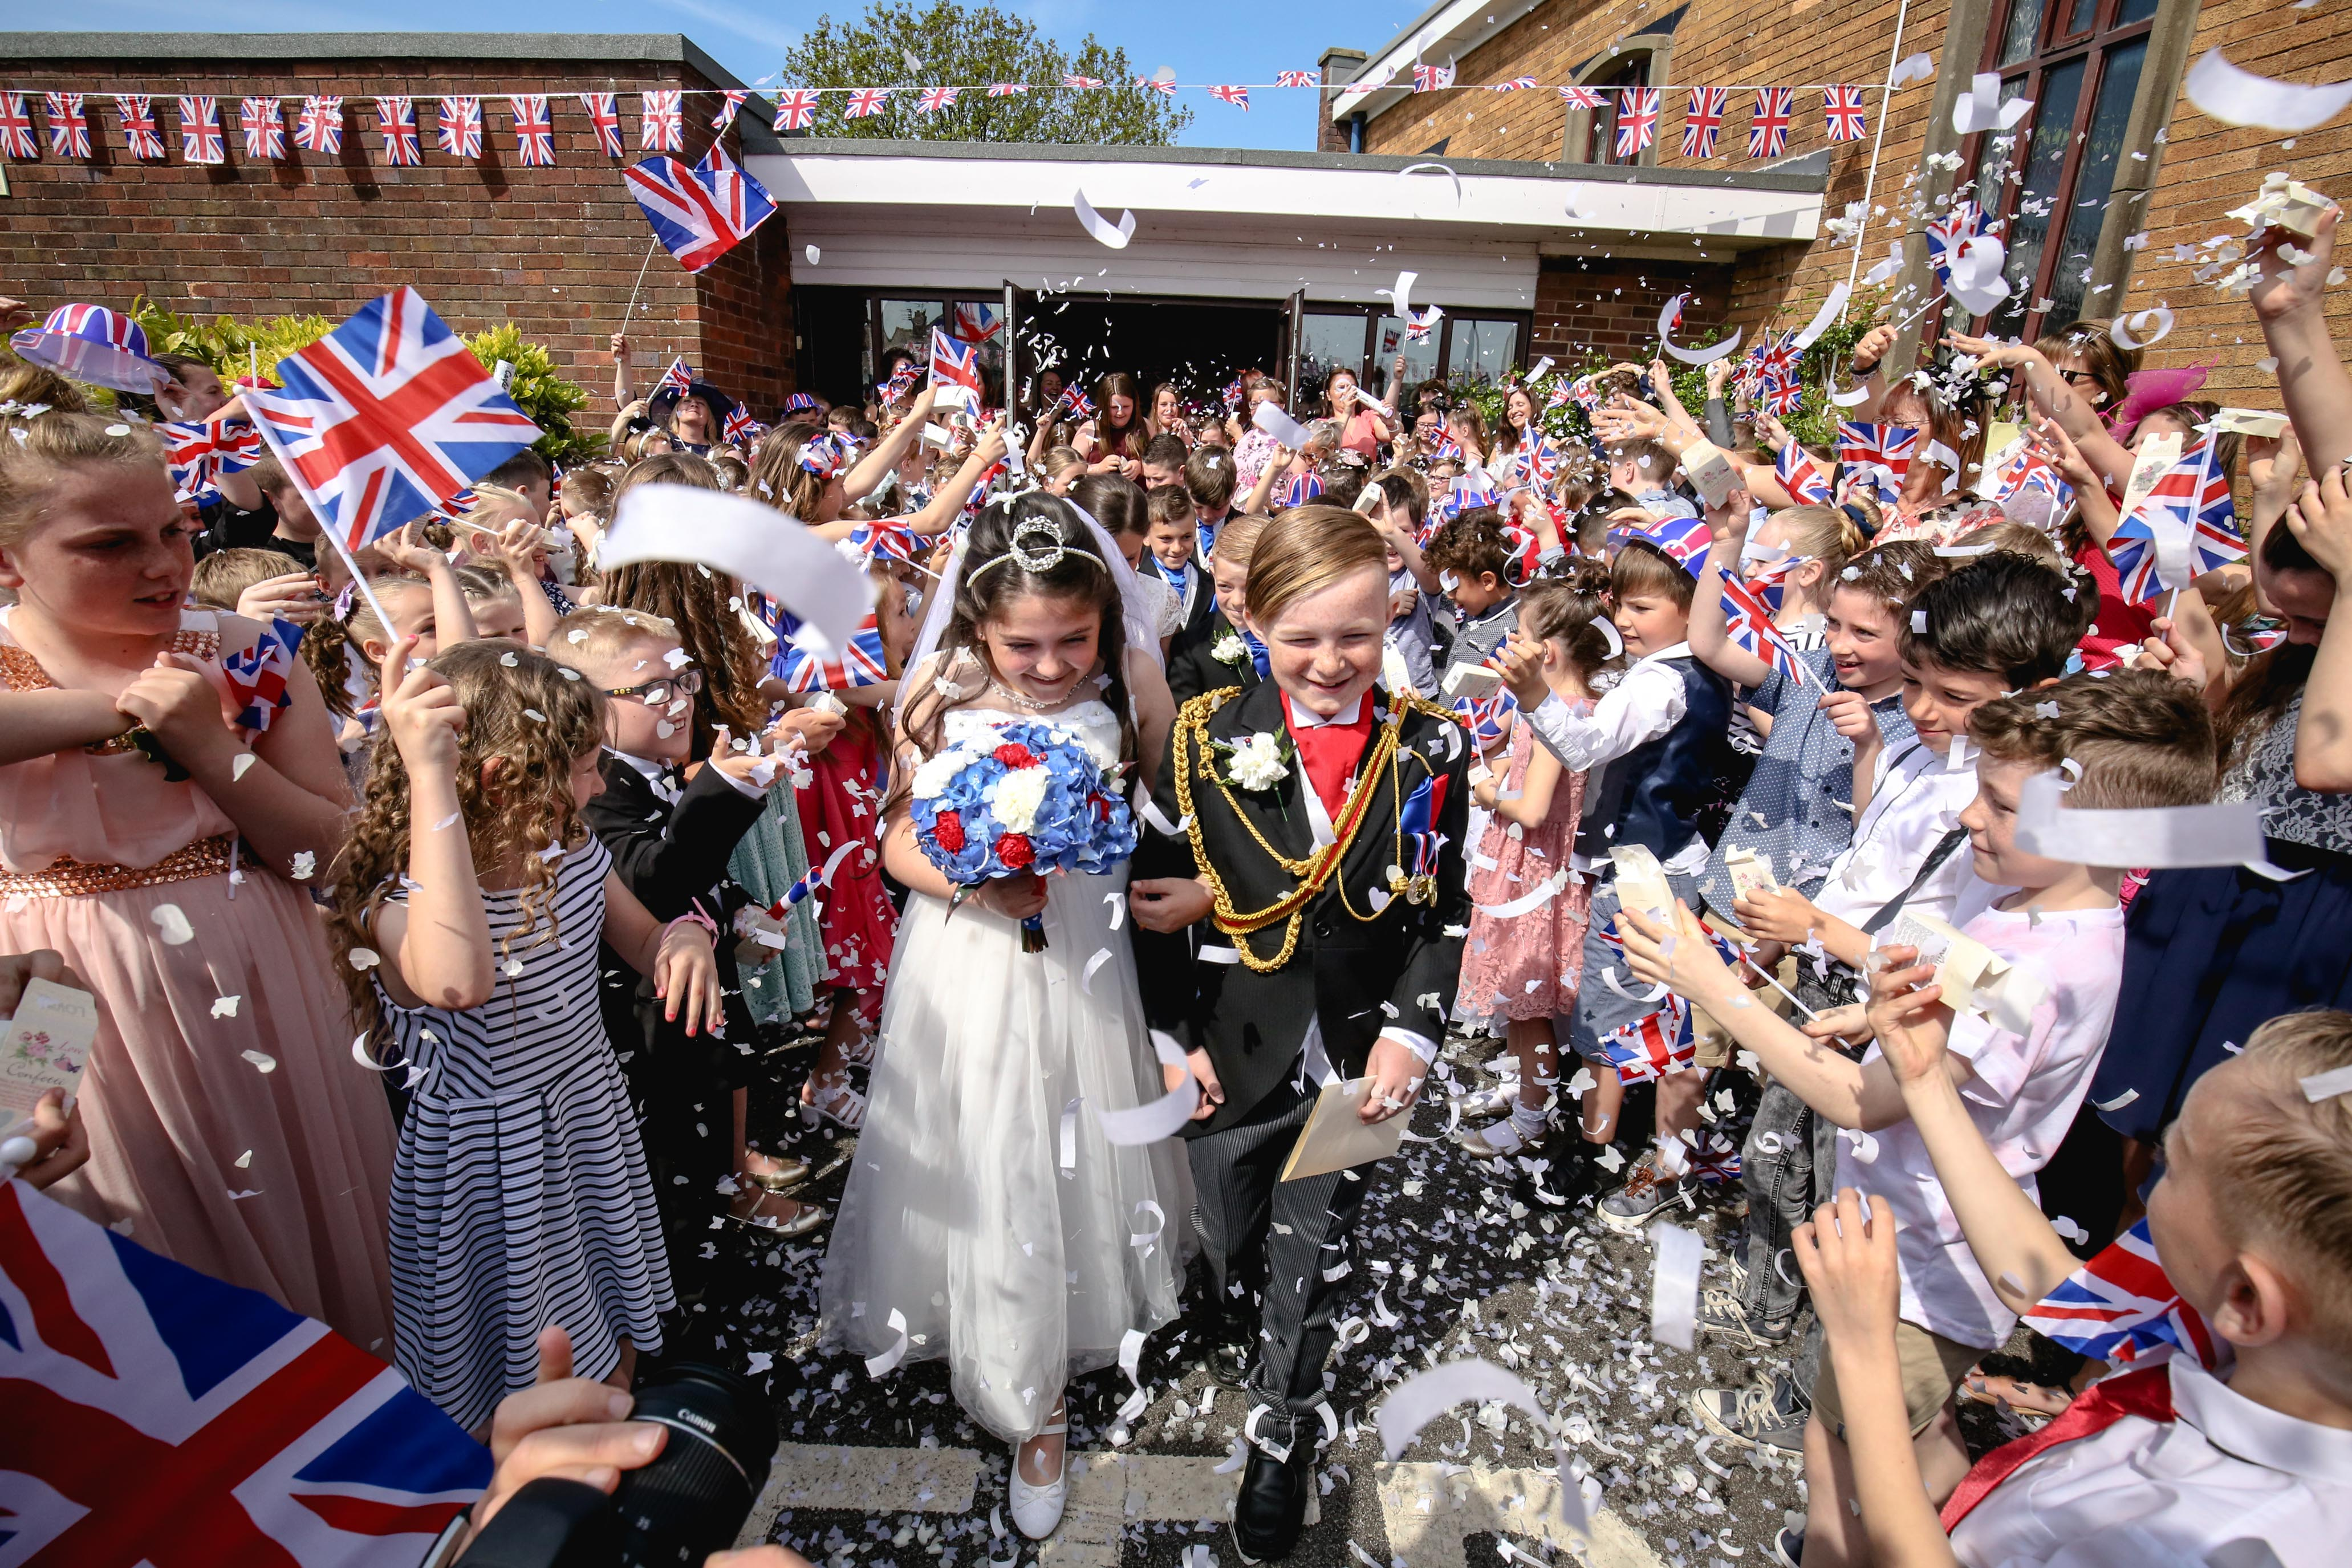 PROUD TO BE BRITISH! HUNDREDS OF SCHOOLCHILDREN SET TO STAGE MOCK WEDDING CEREMONY – COMPLETE WITH HORSE-DRAWN CARRIAGES